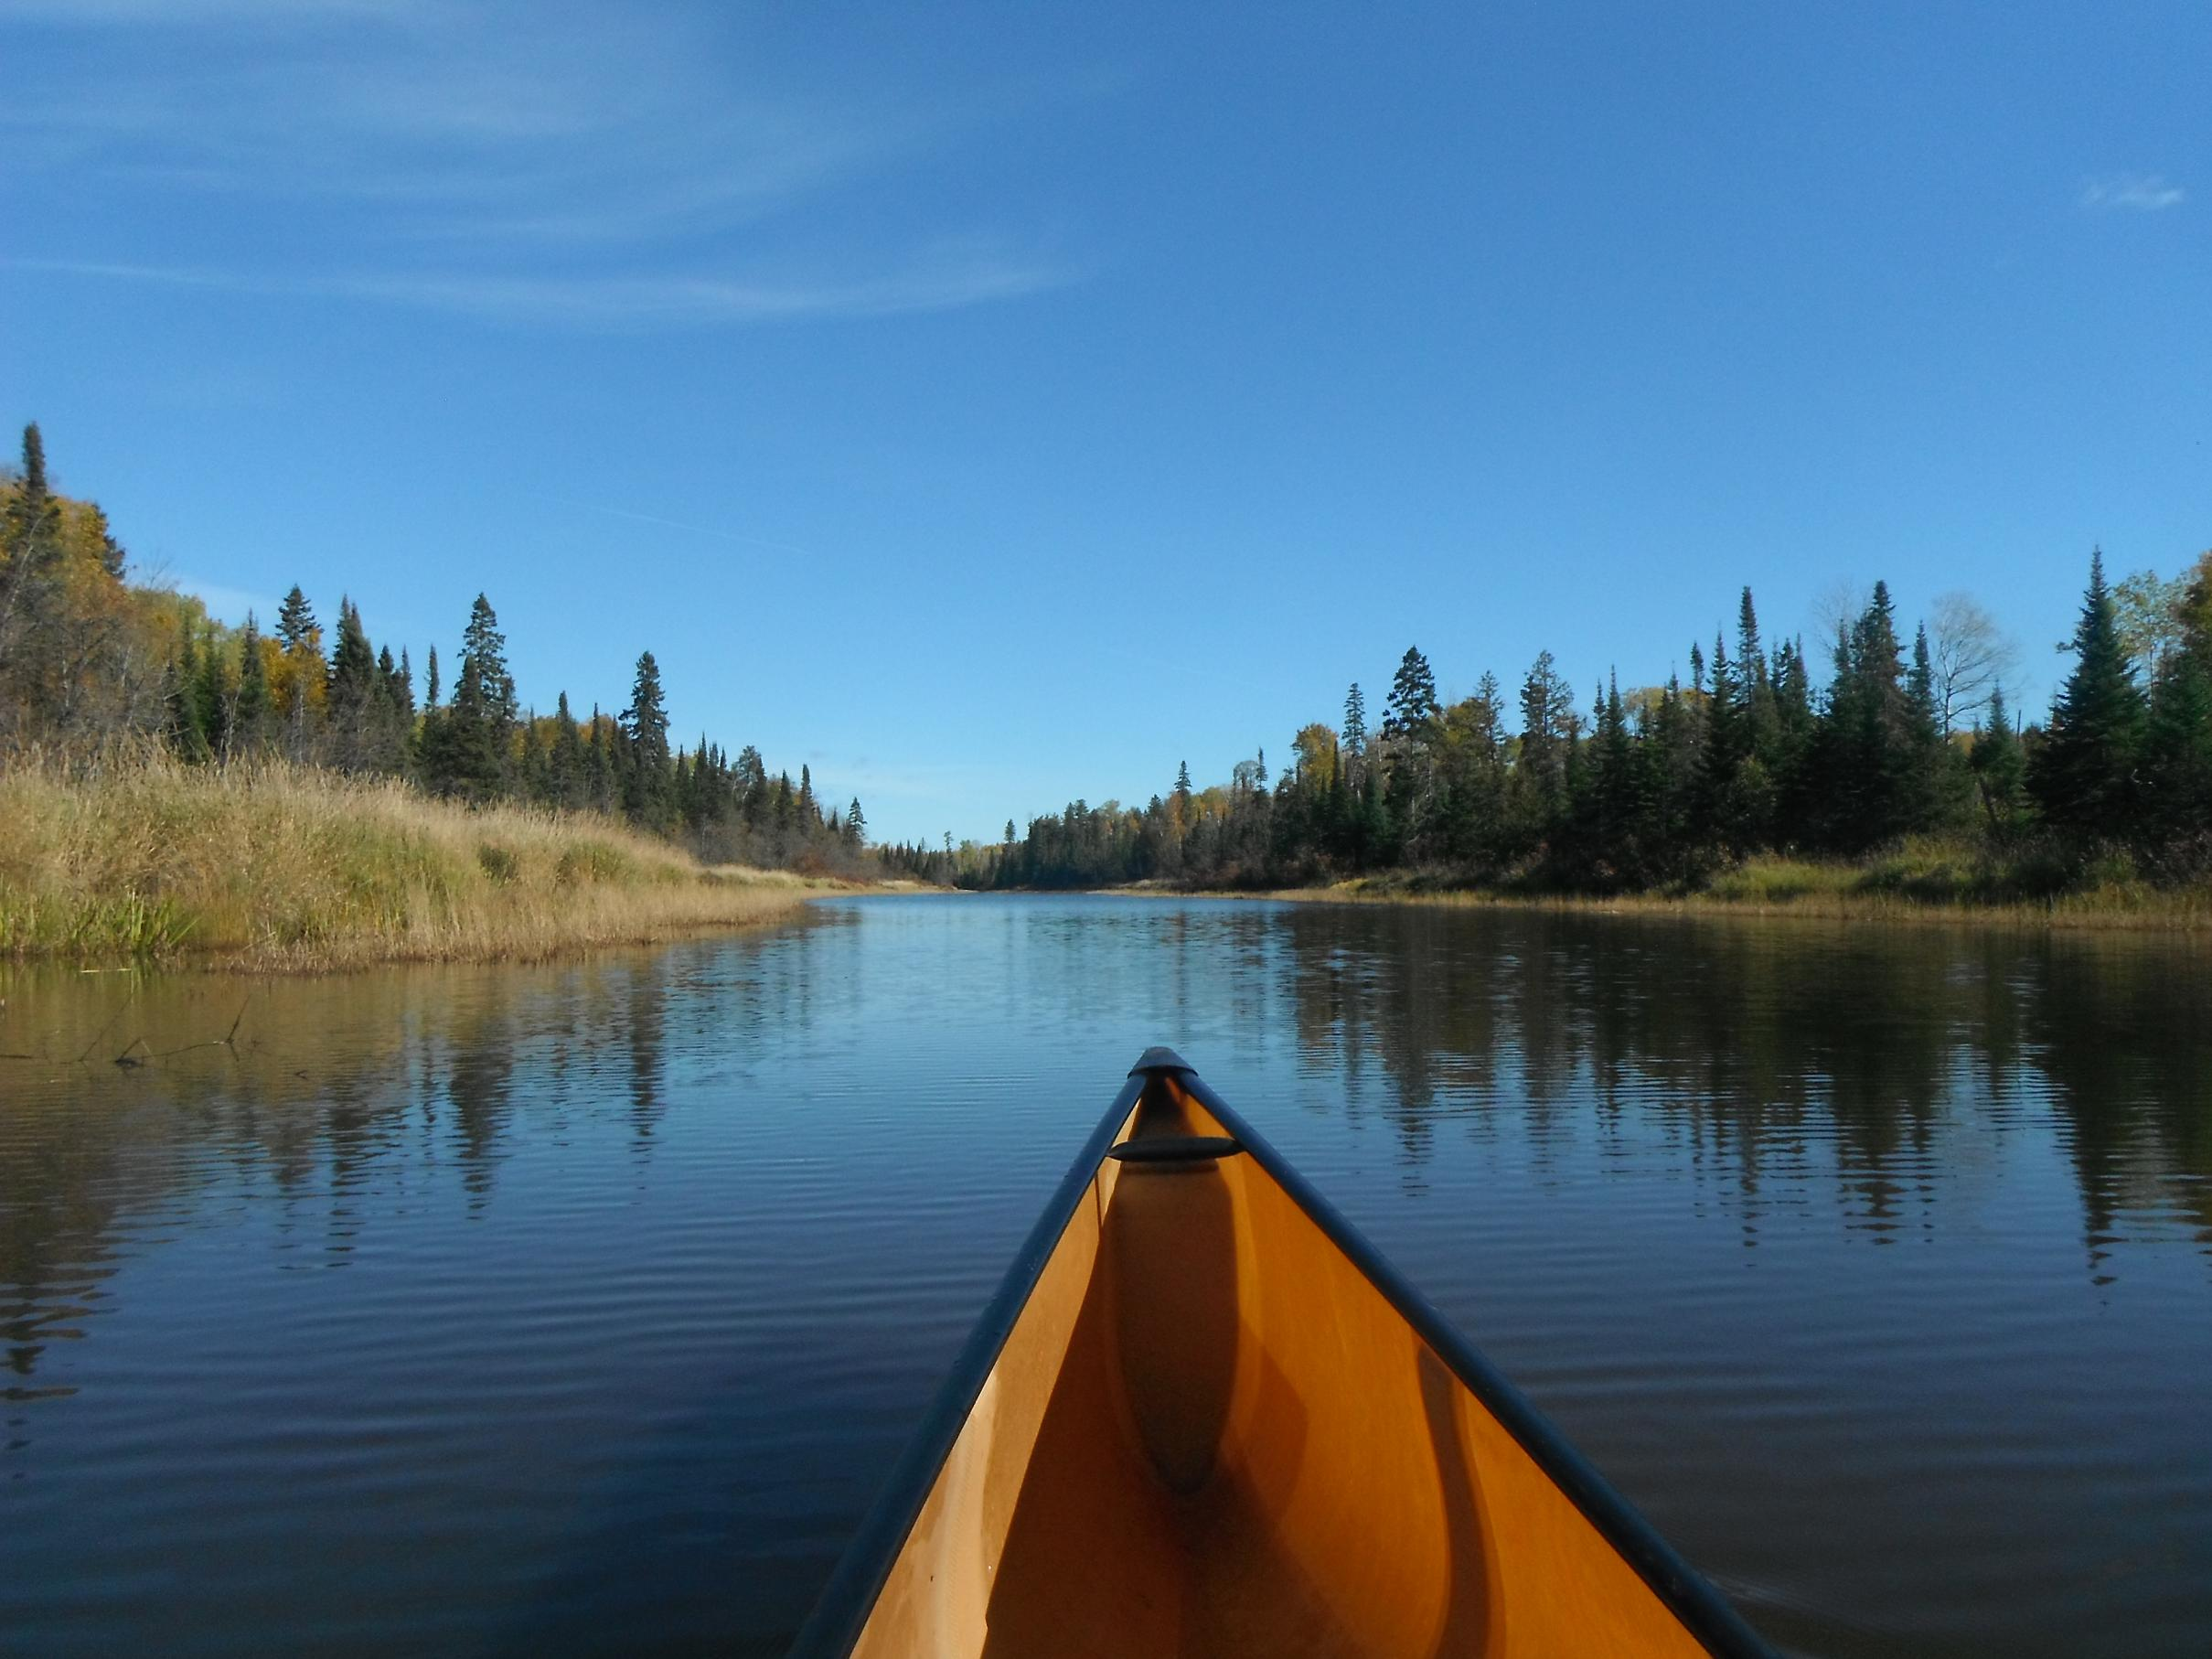 a report on a trip to the boundary waters canoe area